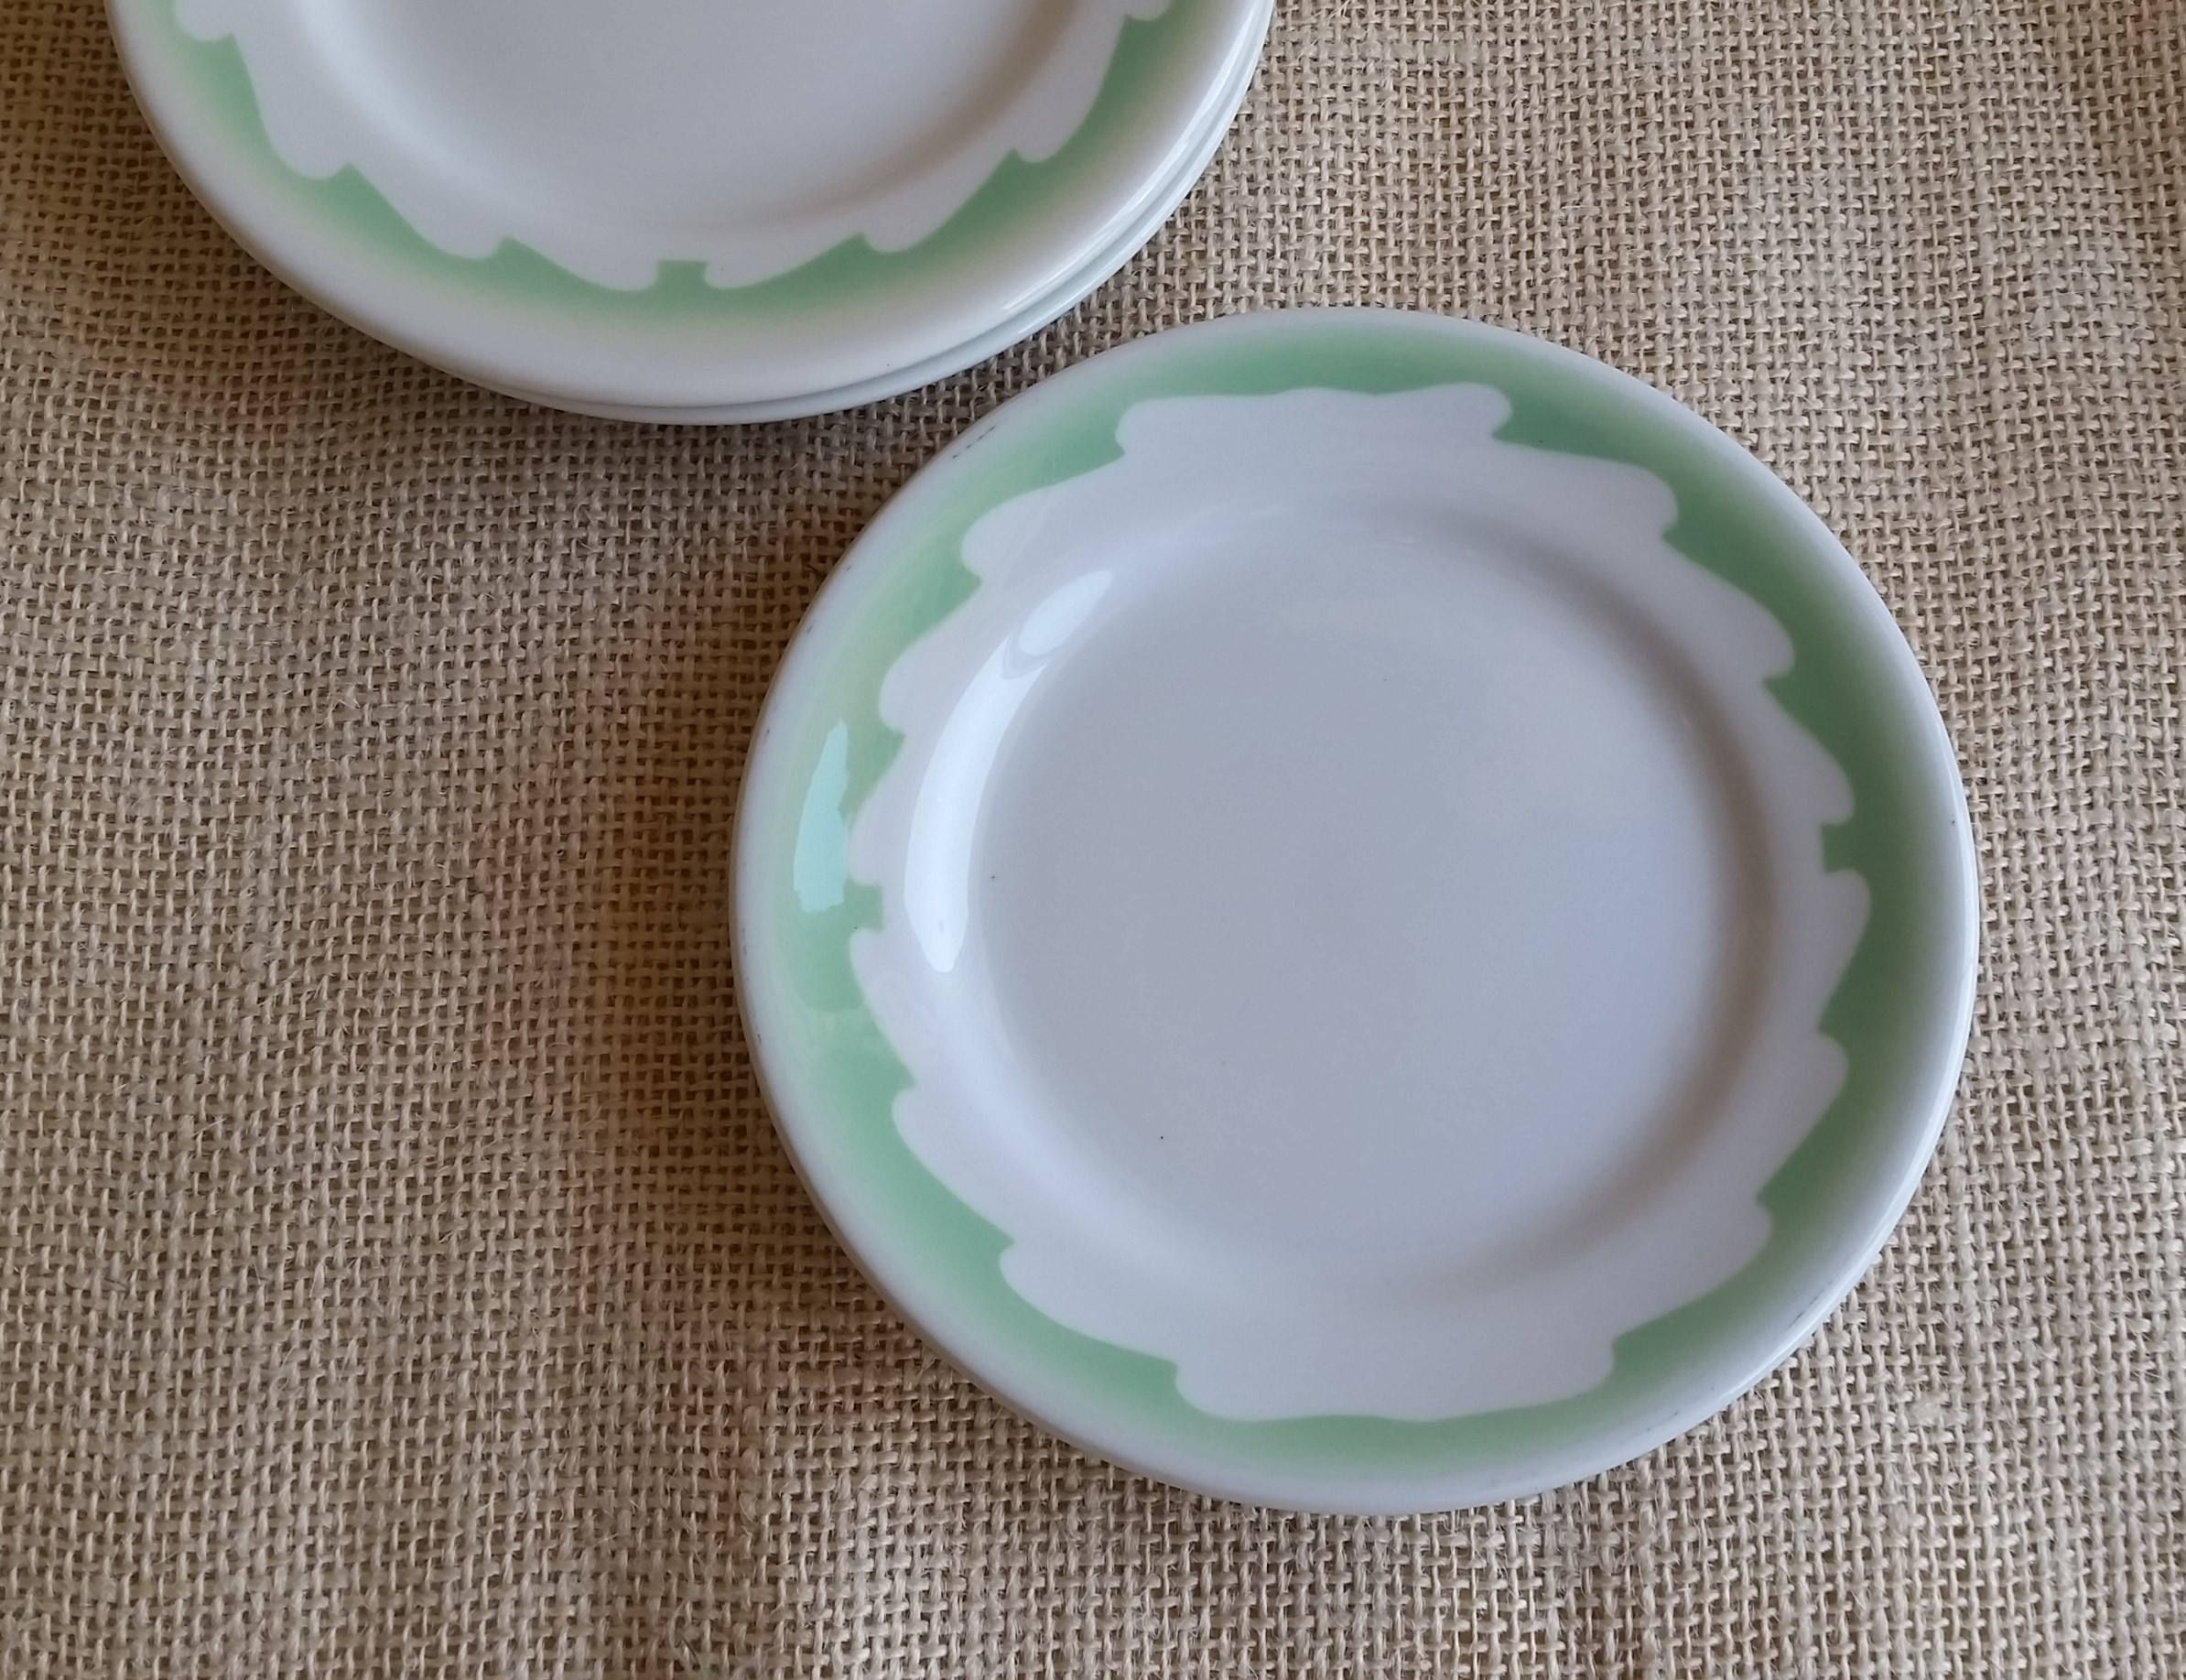 Sterling China Plates Vintage Restaurant Ware Set of 3 Mid Century Modern White and Green Vitrified & Mid Century Modern Plates Sterling China Plates Vintage Restaurant ...